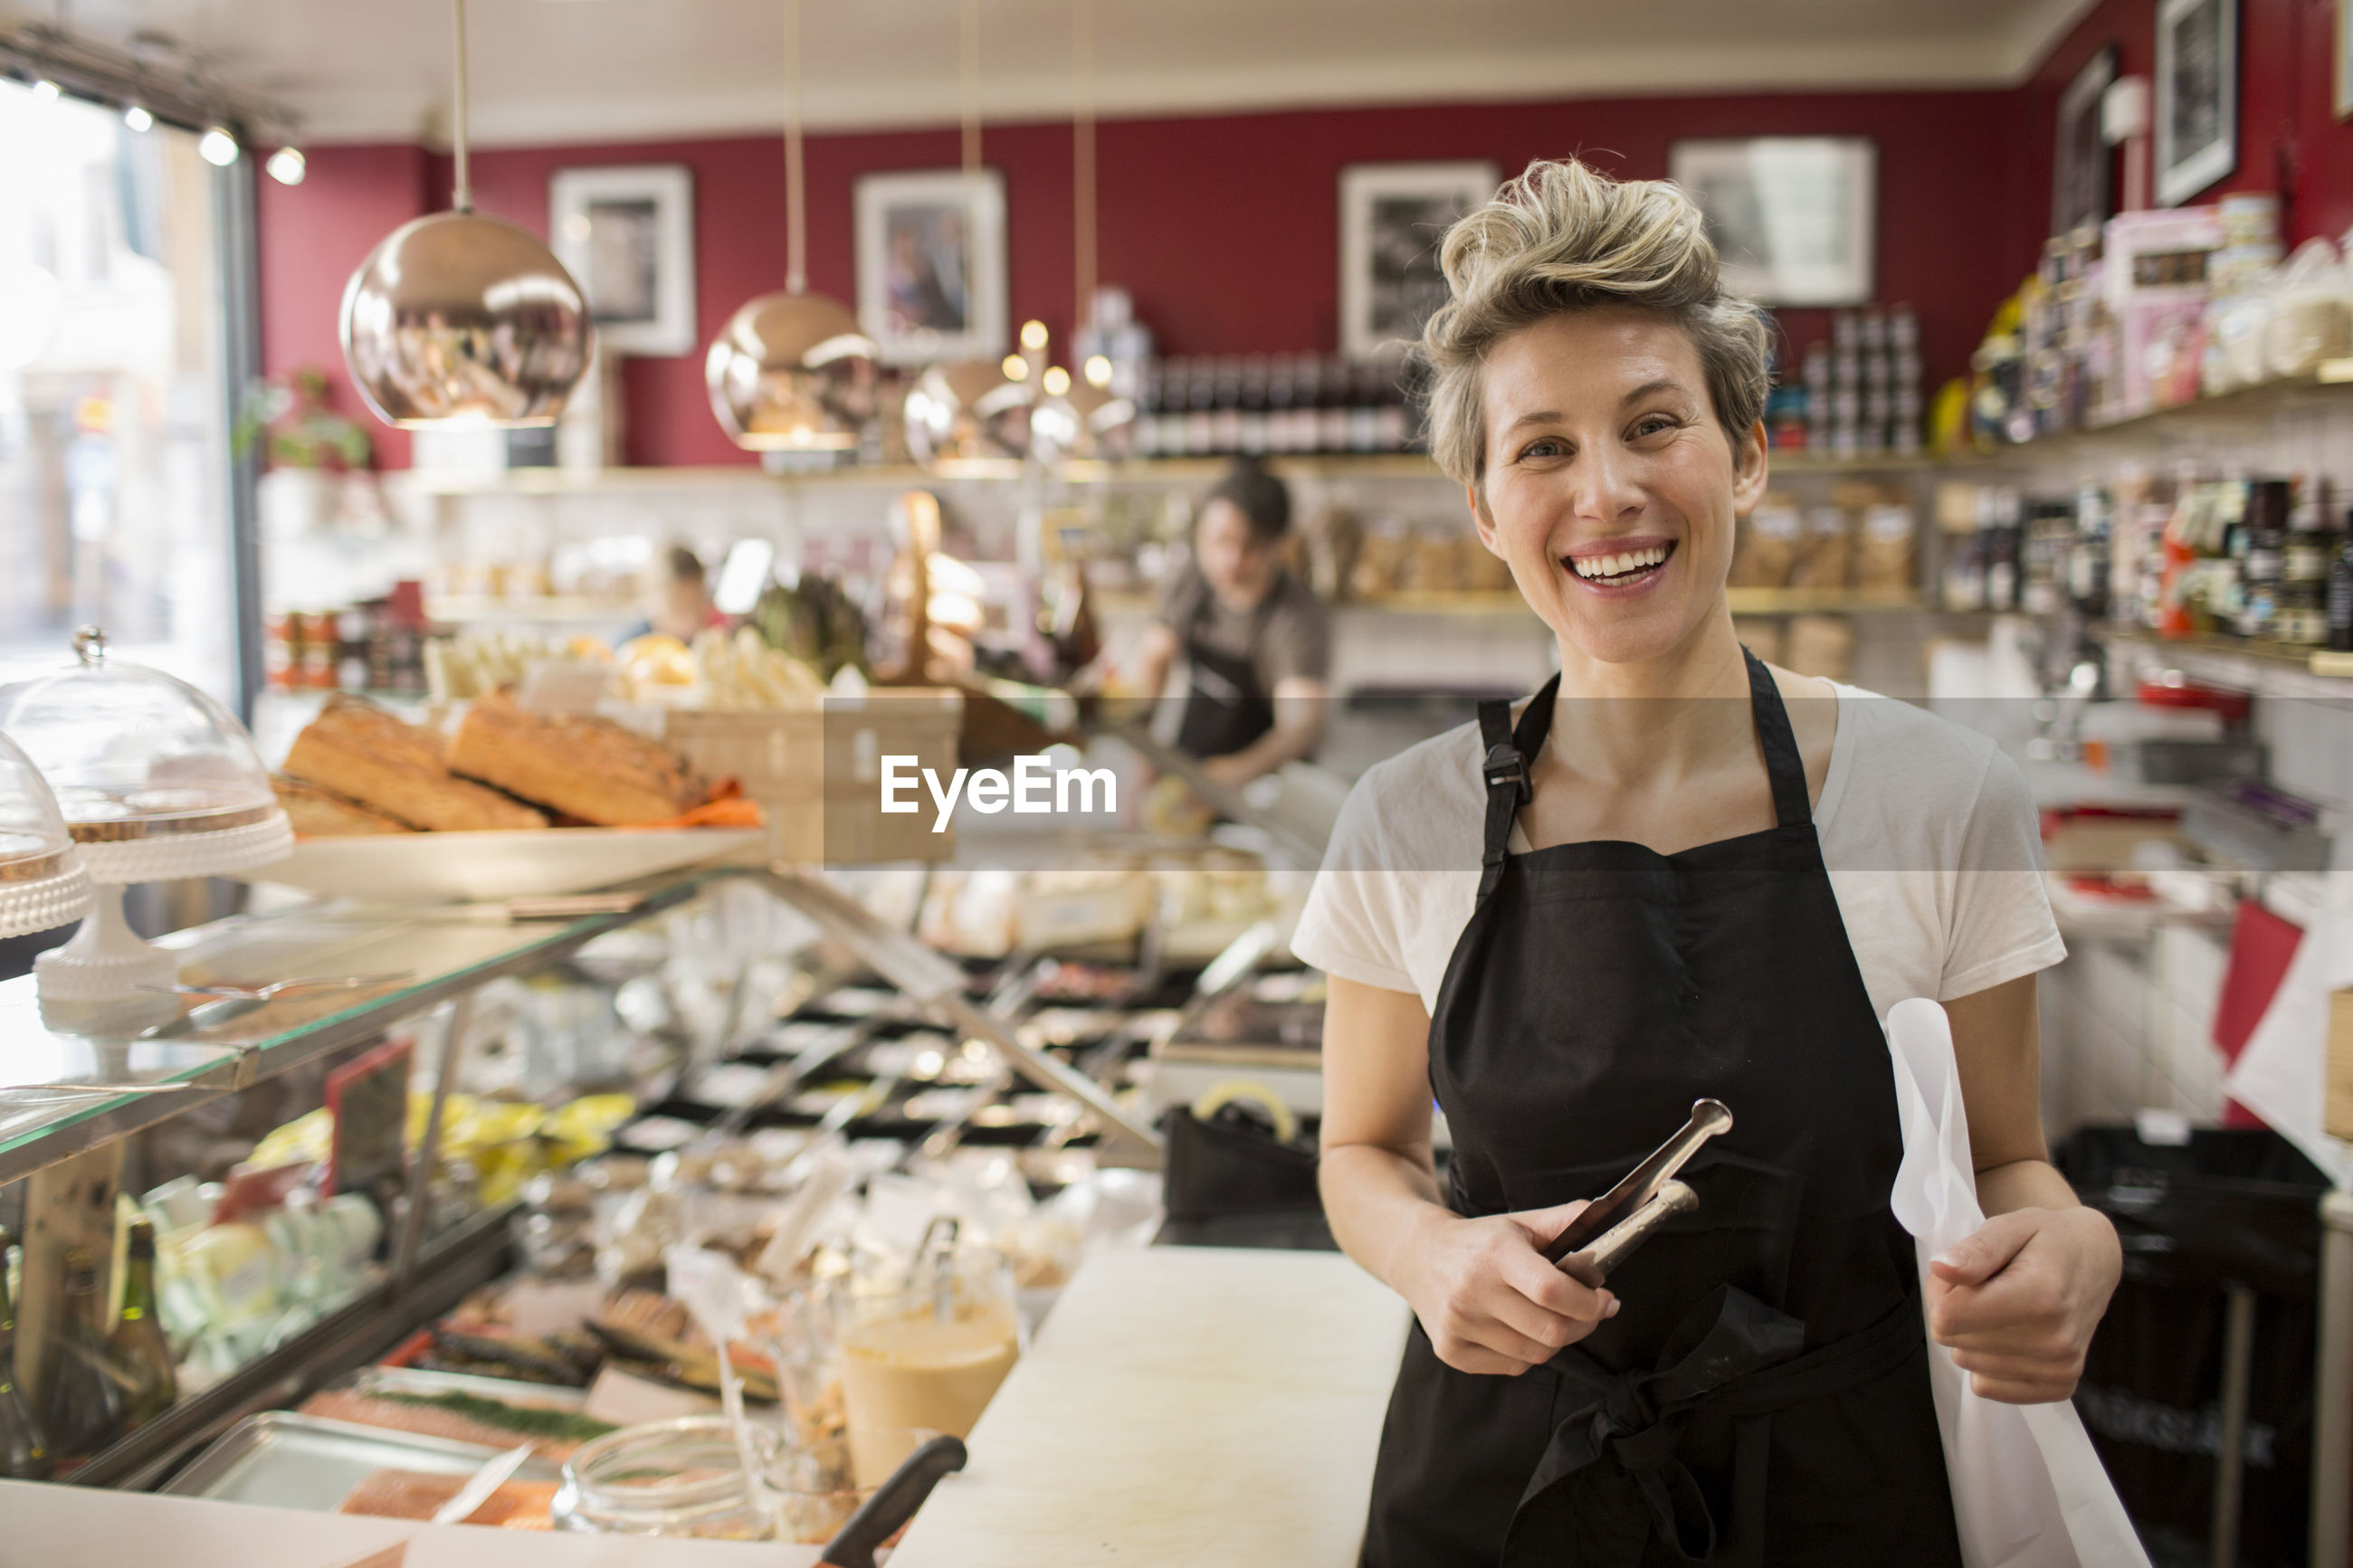 PORTRAIT OF A SMILING YOUNG WOMAN STANDING AT STORE